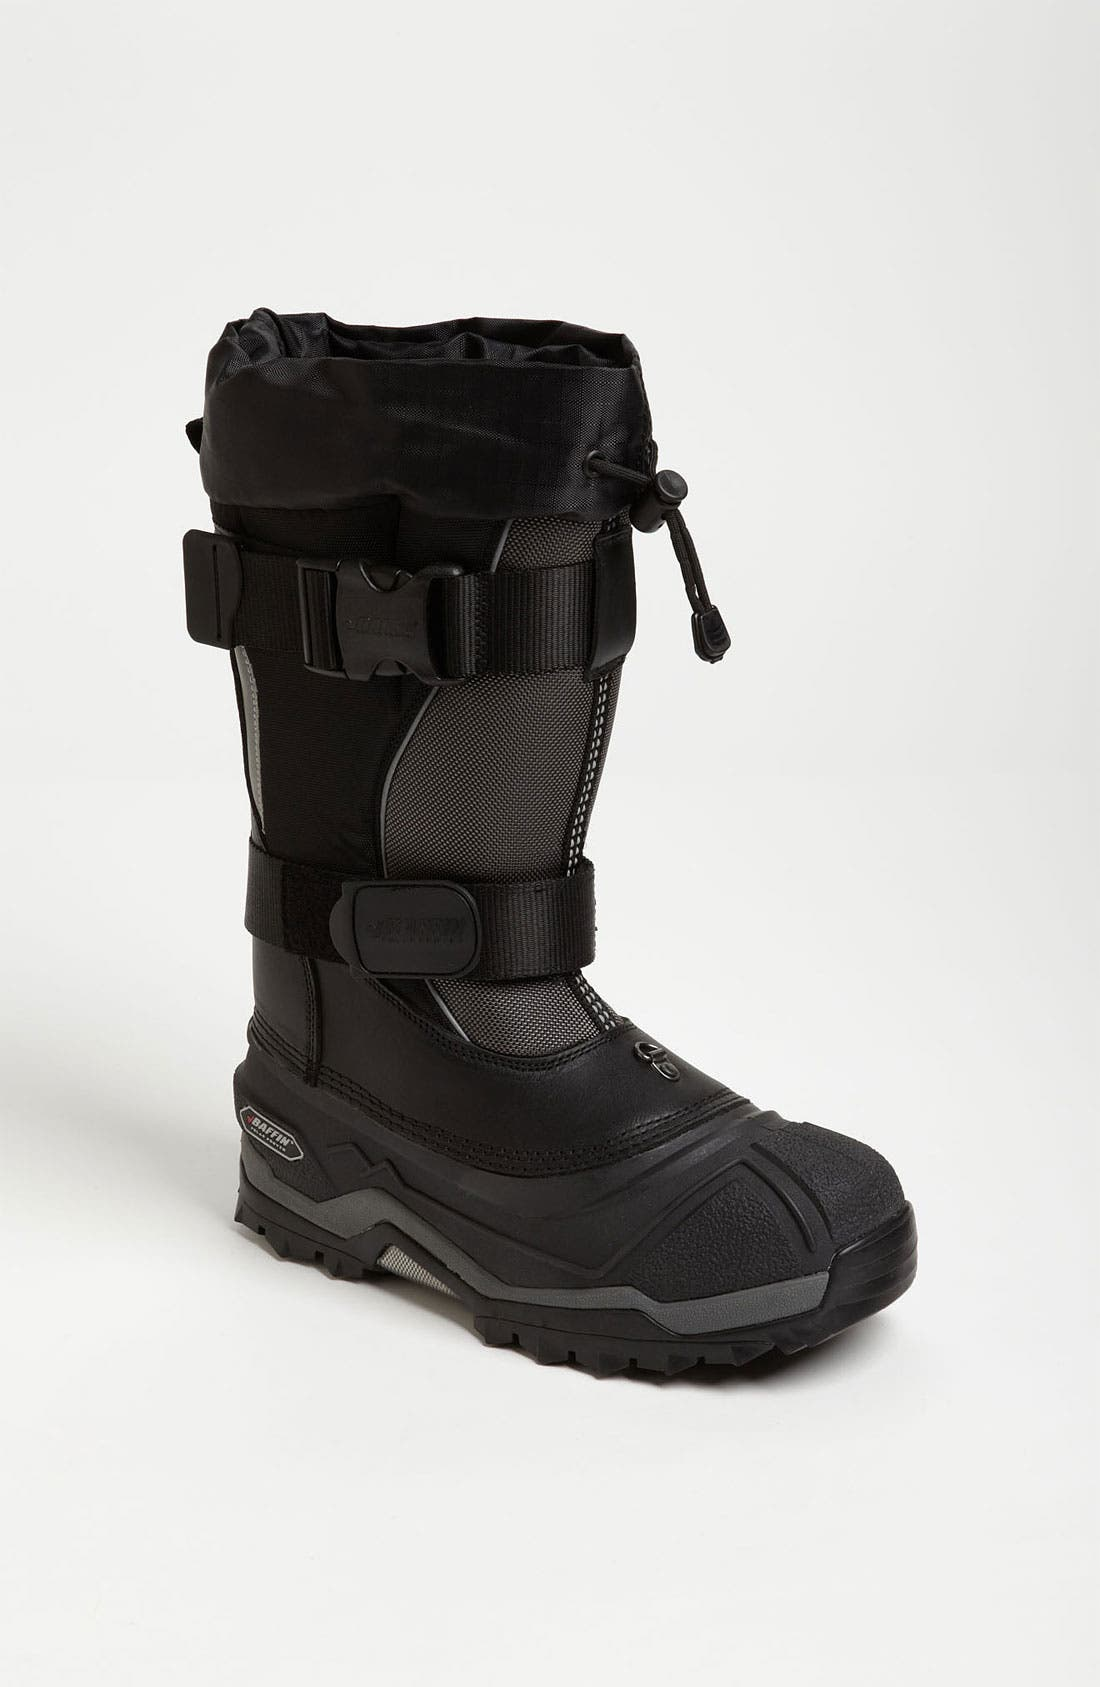 Main Image - Baffin 'Selkirk' Snow Boot (Online Only)